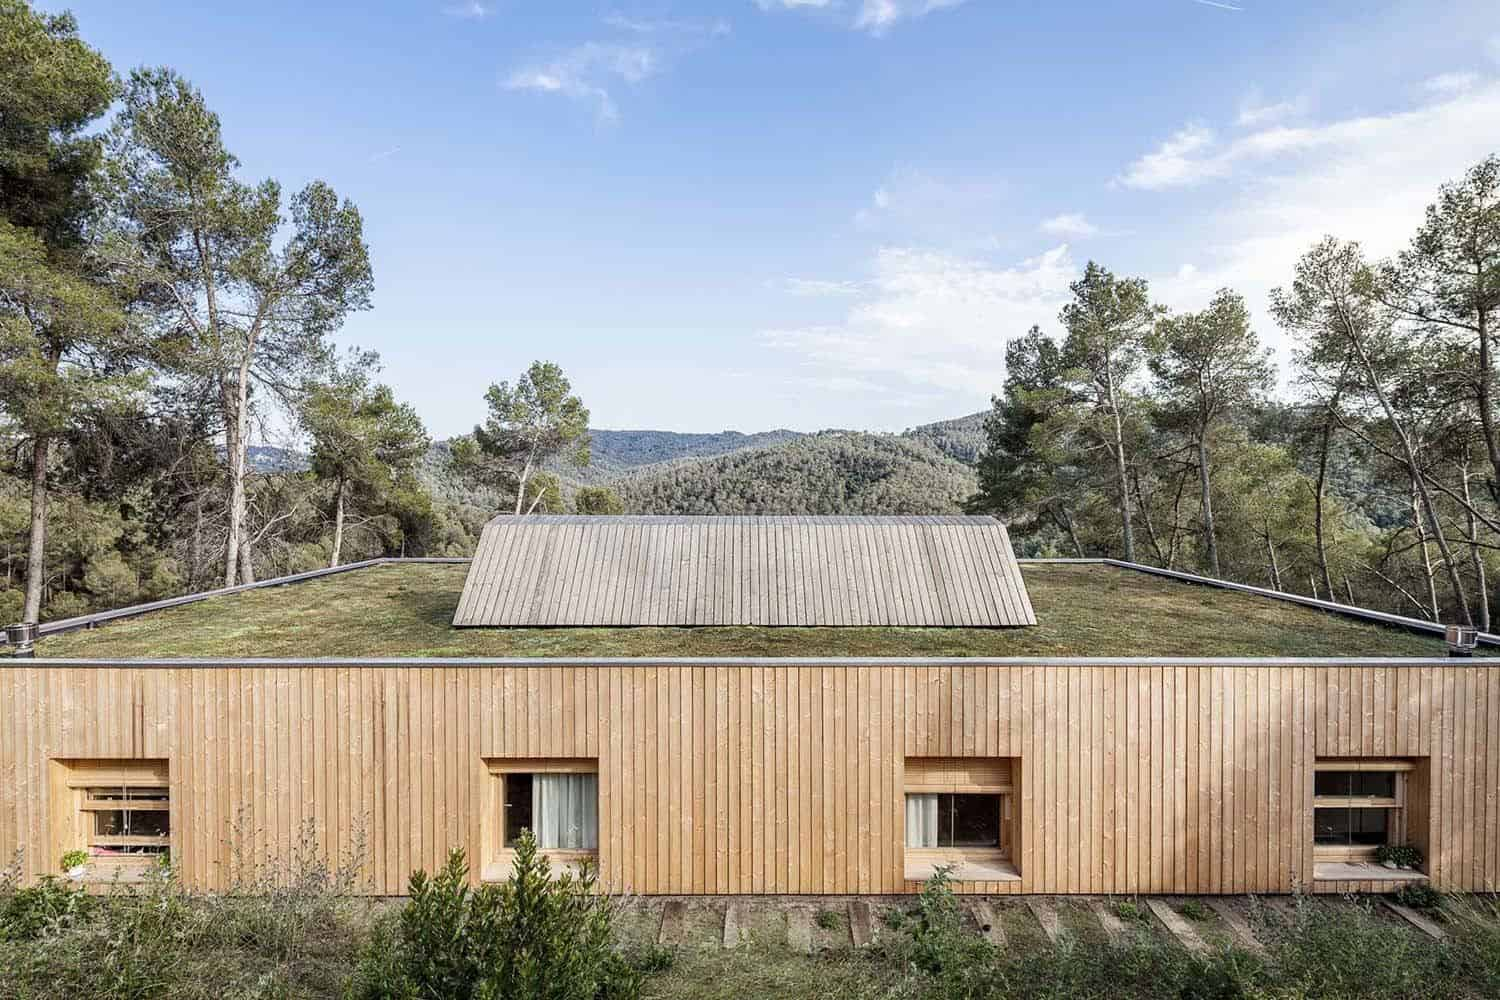 Prefabricated Home Design-Alventosa Morell Arquitectes-03-1 Kindesign